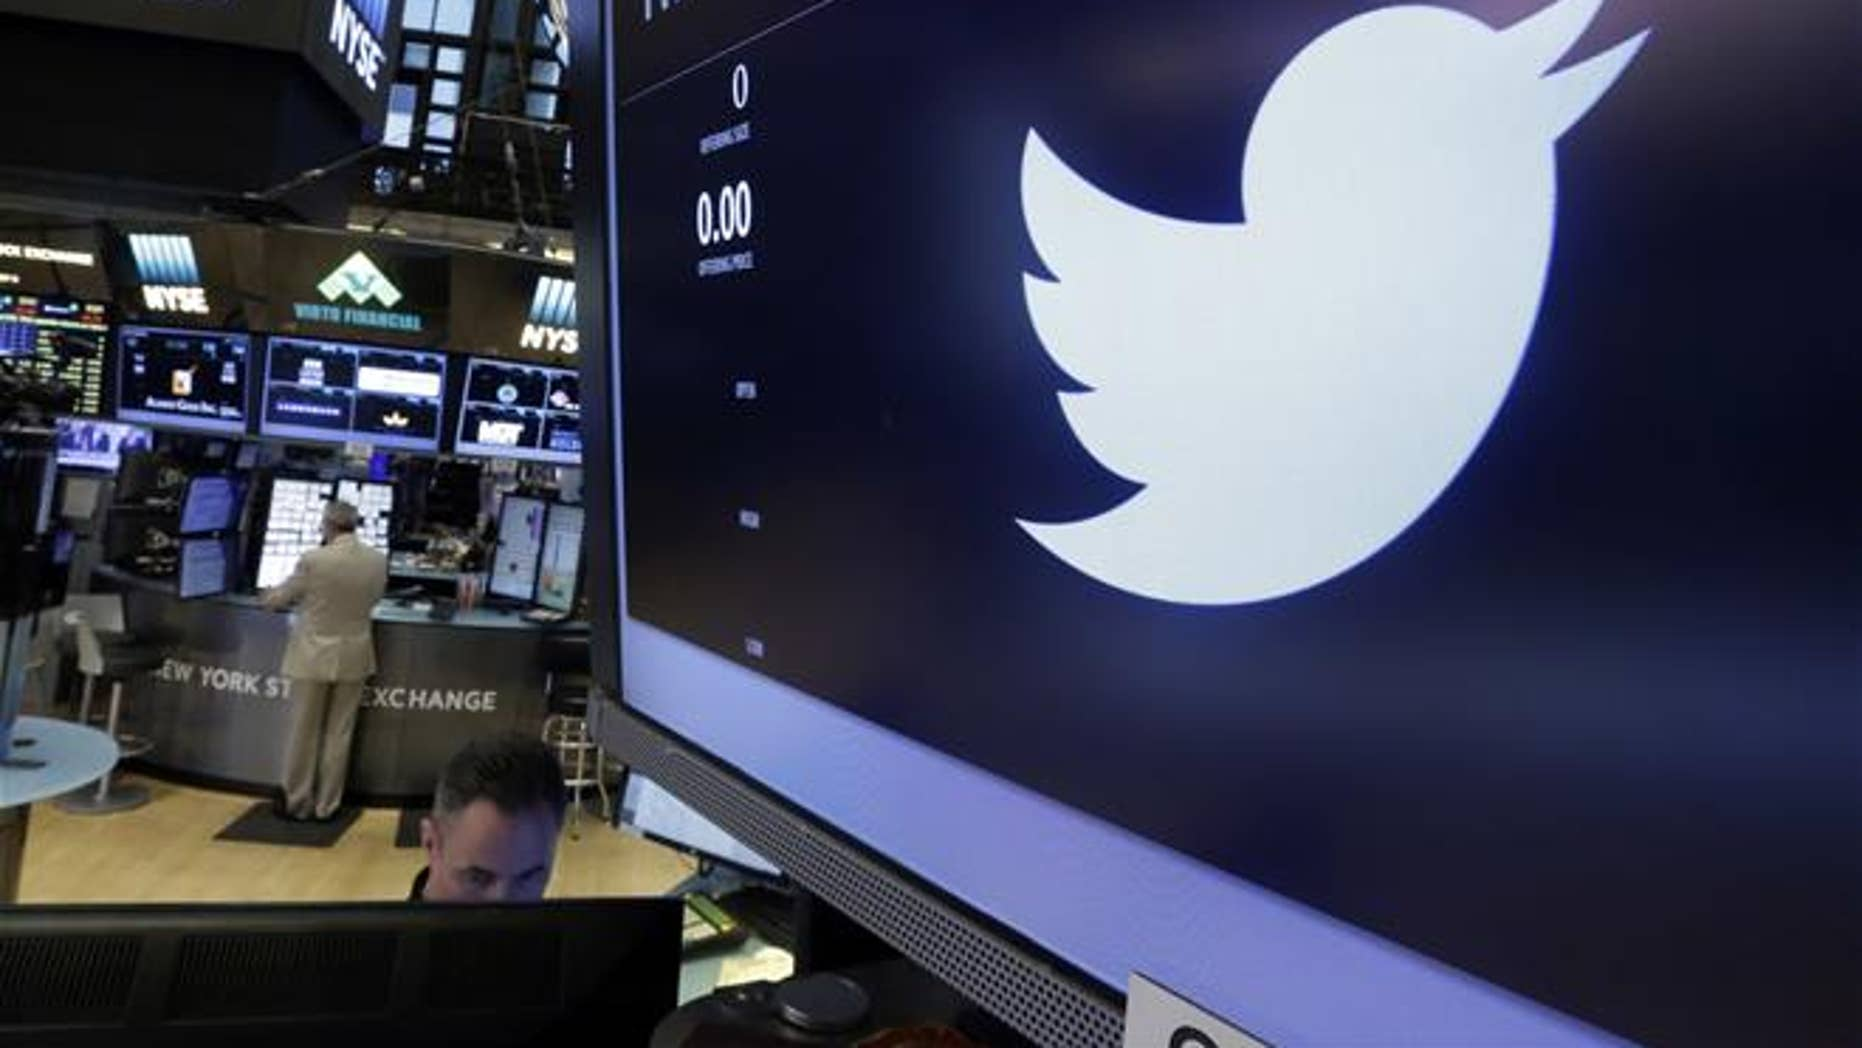 The Twitter logo appears at the post where it trades on the floor of the New York Stock Exchange.